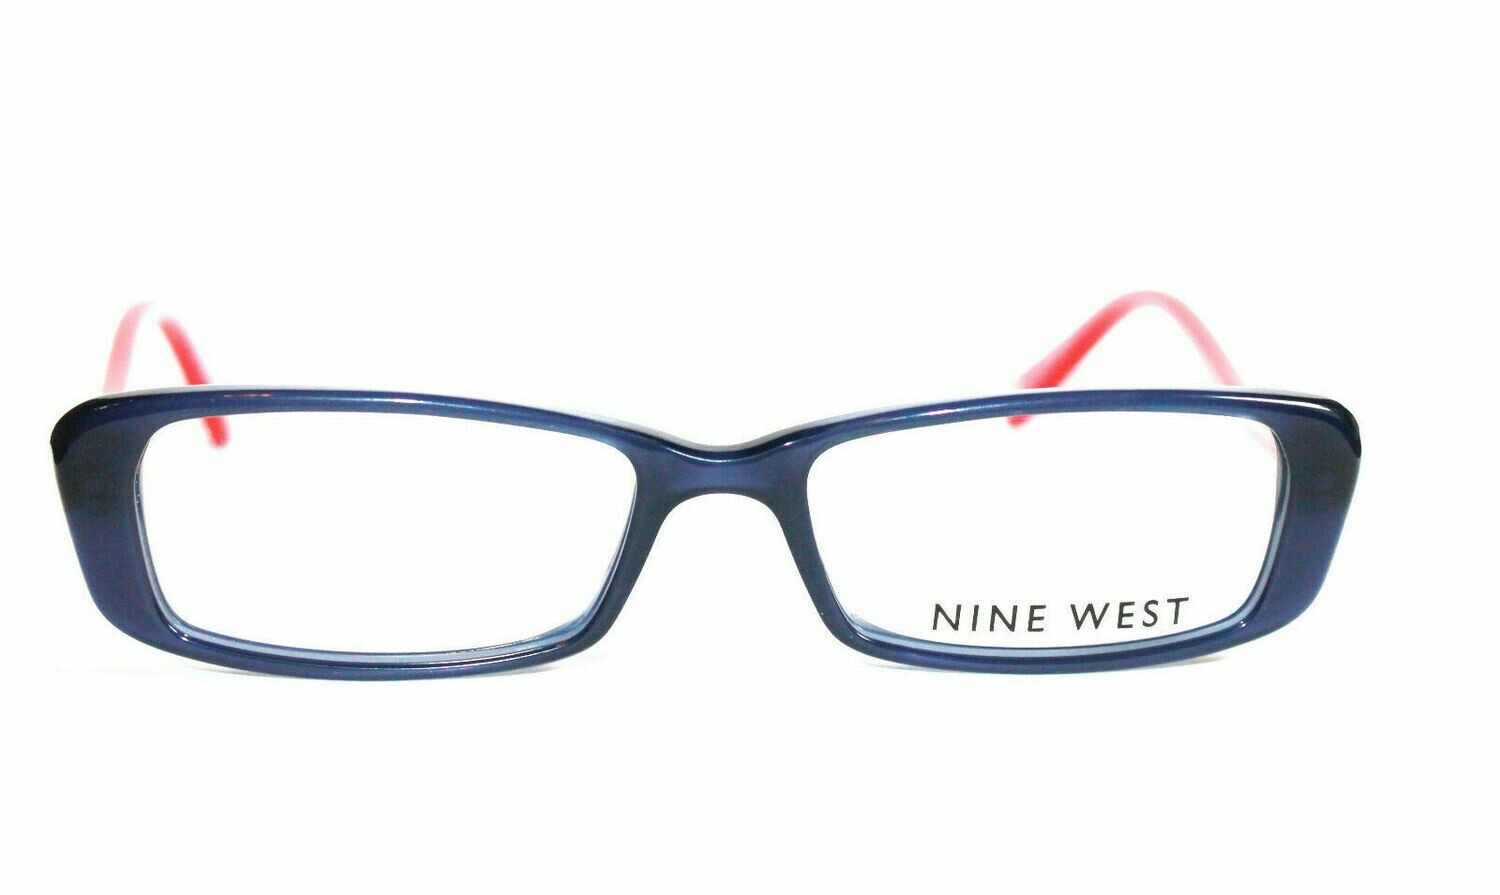 Nine West NW5020 Navy/Pink 50-16-135 Free NW case New in packaging